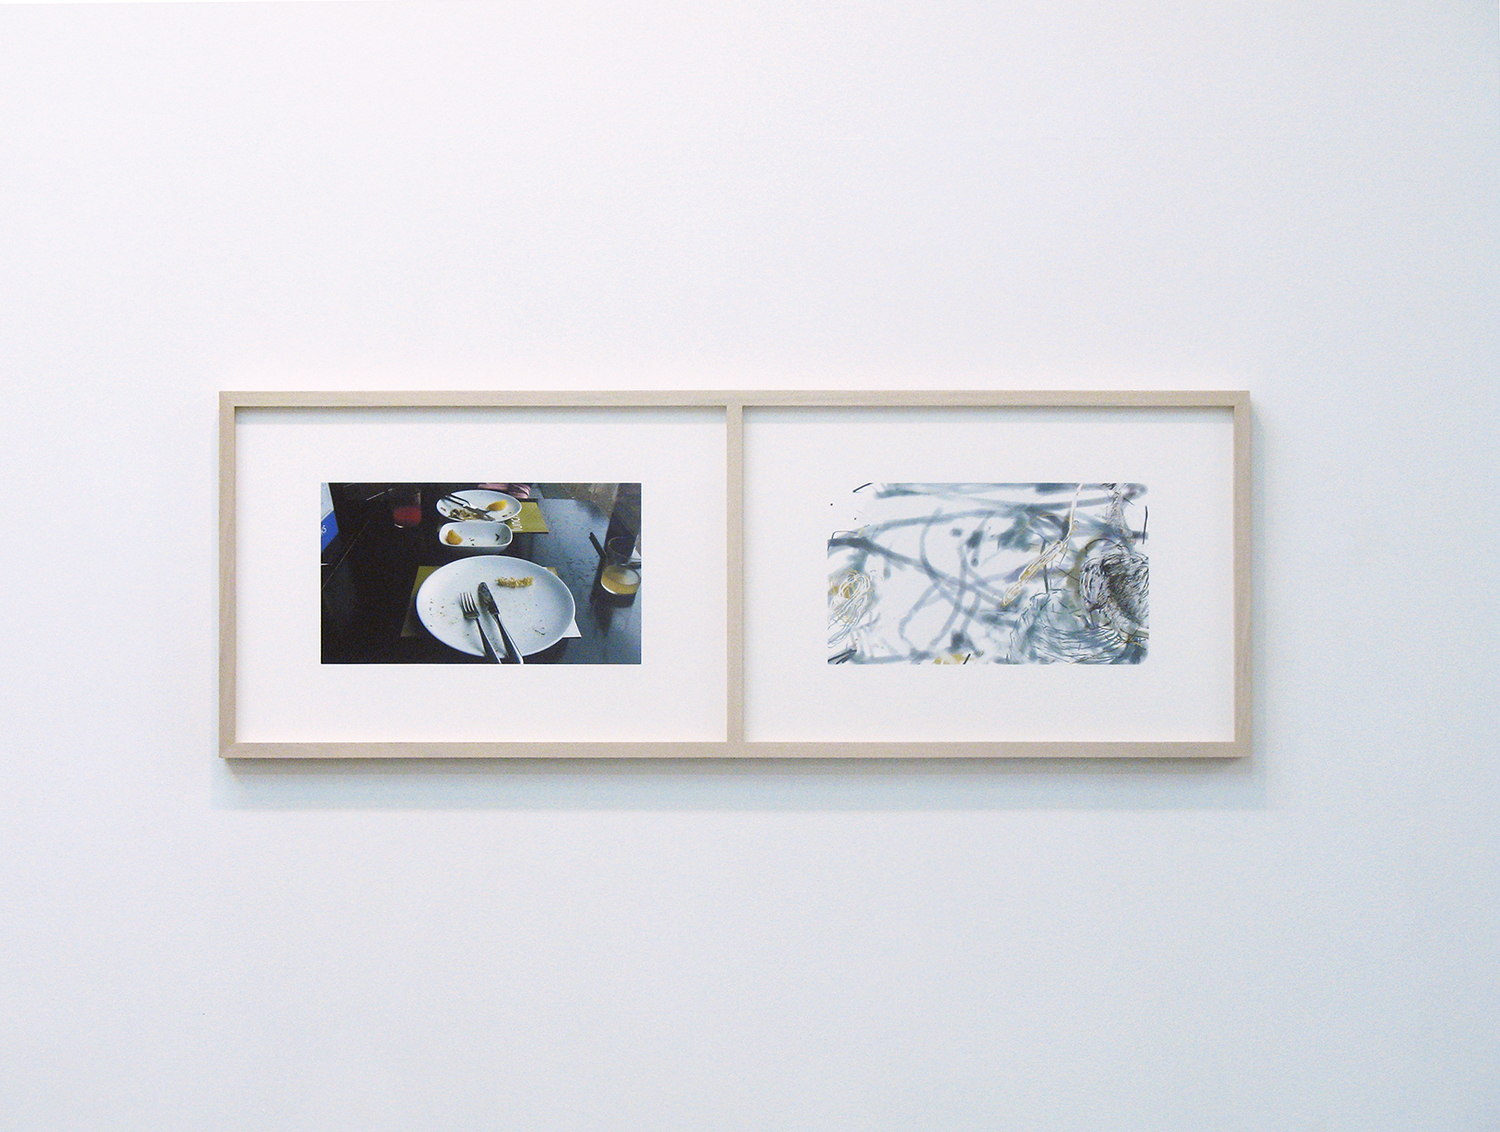 Inkjet print on Archived paper|329 x 483 mm x 2|2006